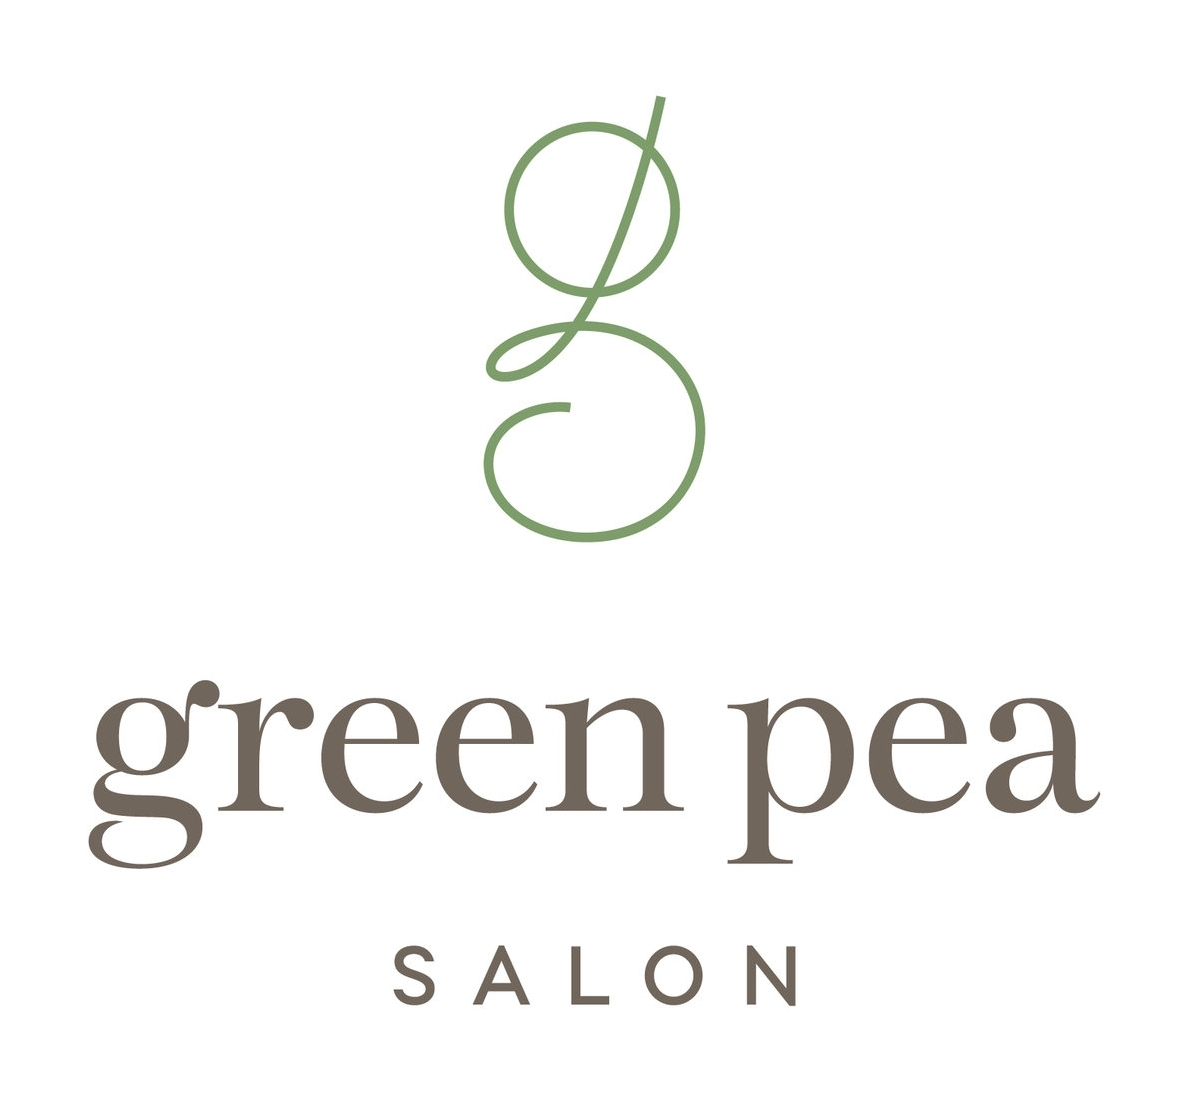 green pea salon